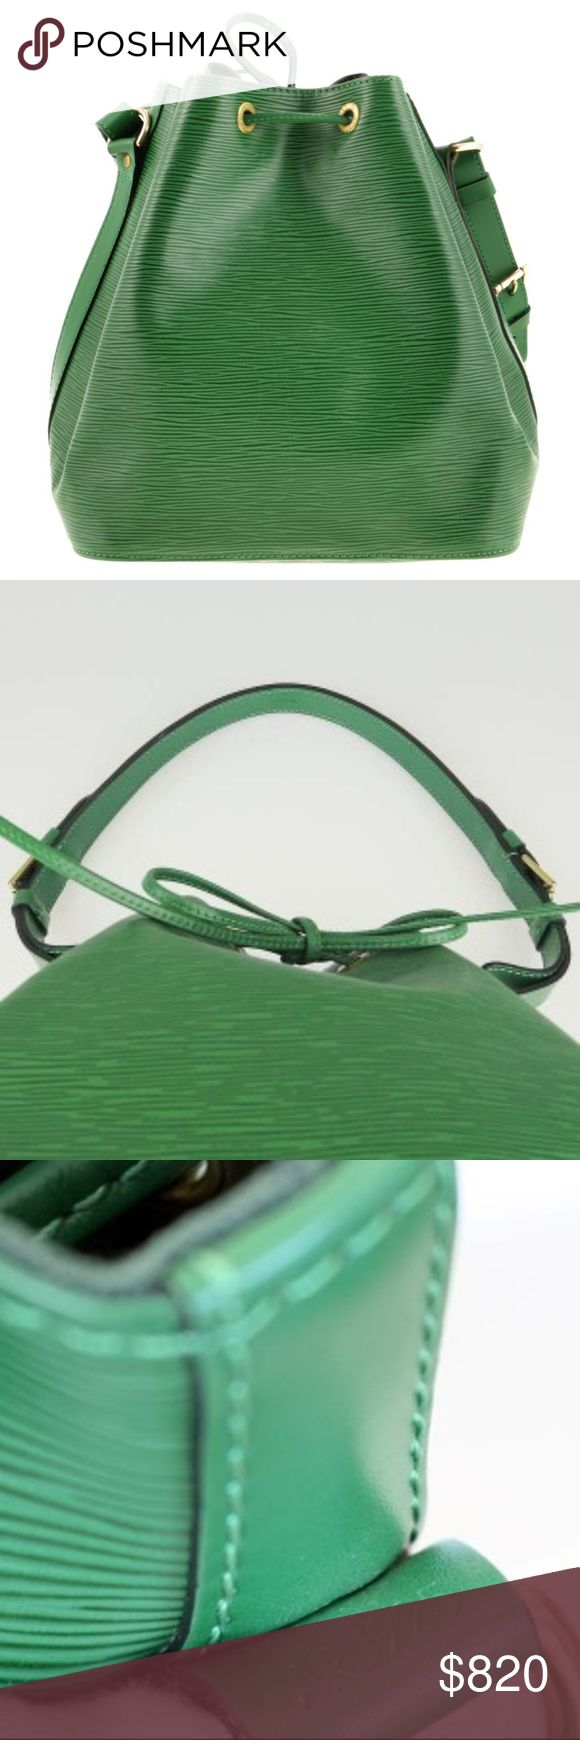 Louis Vuitton Noe Epi Leather Green Shoulder Bag One of the house's great designs, the Louis Vuitton Petit Noé is elegance itself. Its durable Epi leather means it is ideal for daily use, whilst still being effortlessly stylish and elegant. This Authentic gorgeous LV bag is a rarity. Clean inside and outside, maintains its shape and has been barely used, maybe twice. Please check photos.  Perfect for every day.  LV original Dust bag included. Adjustable Shoulder Strap Drop - Make me an offer…